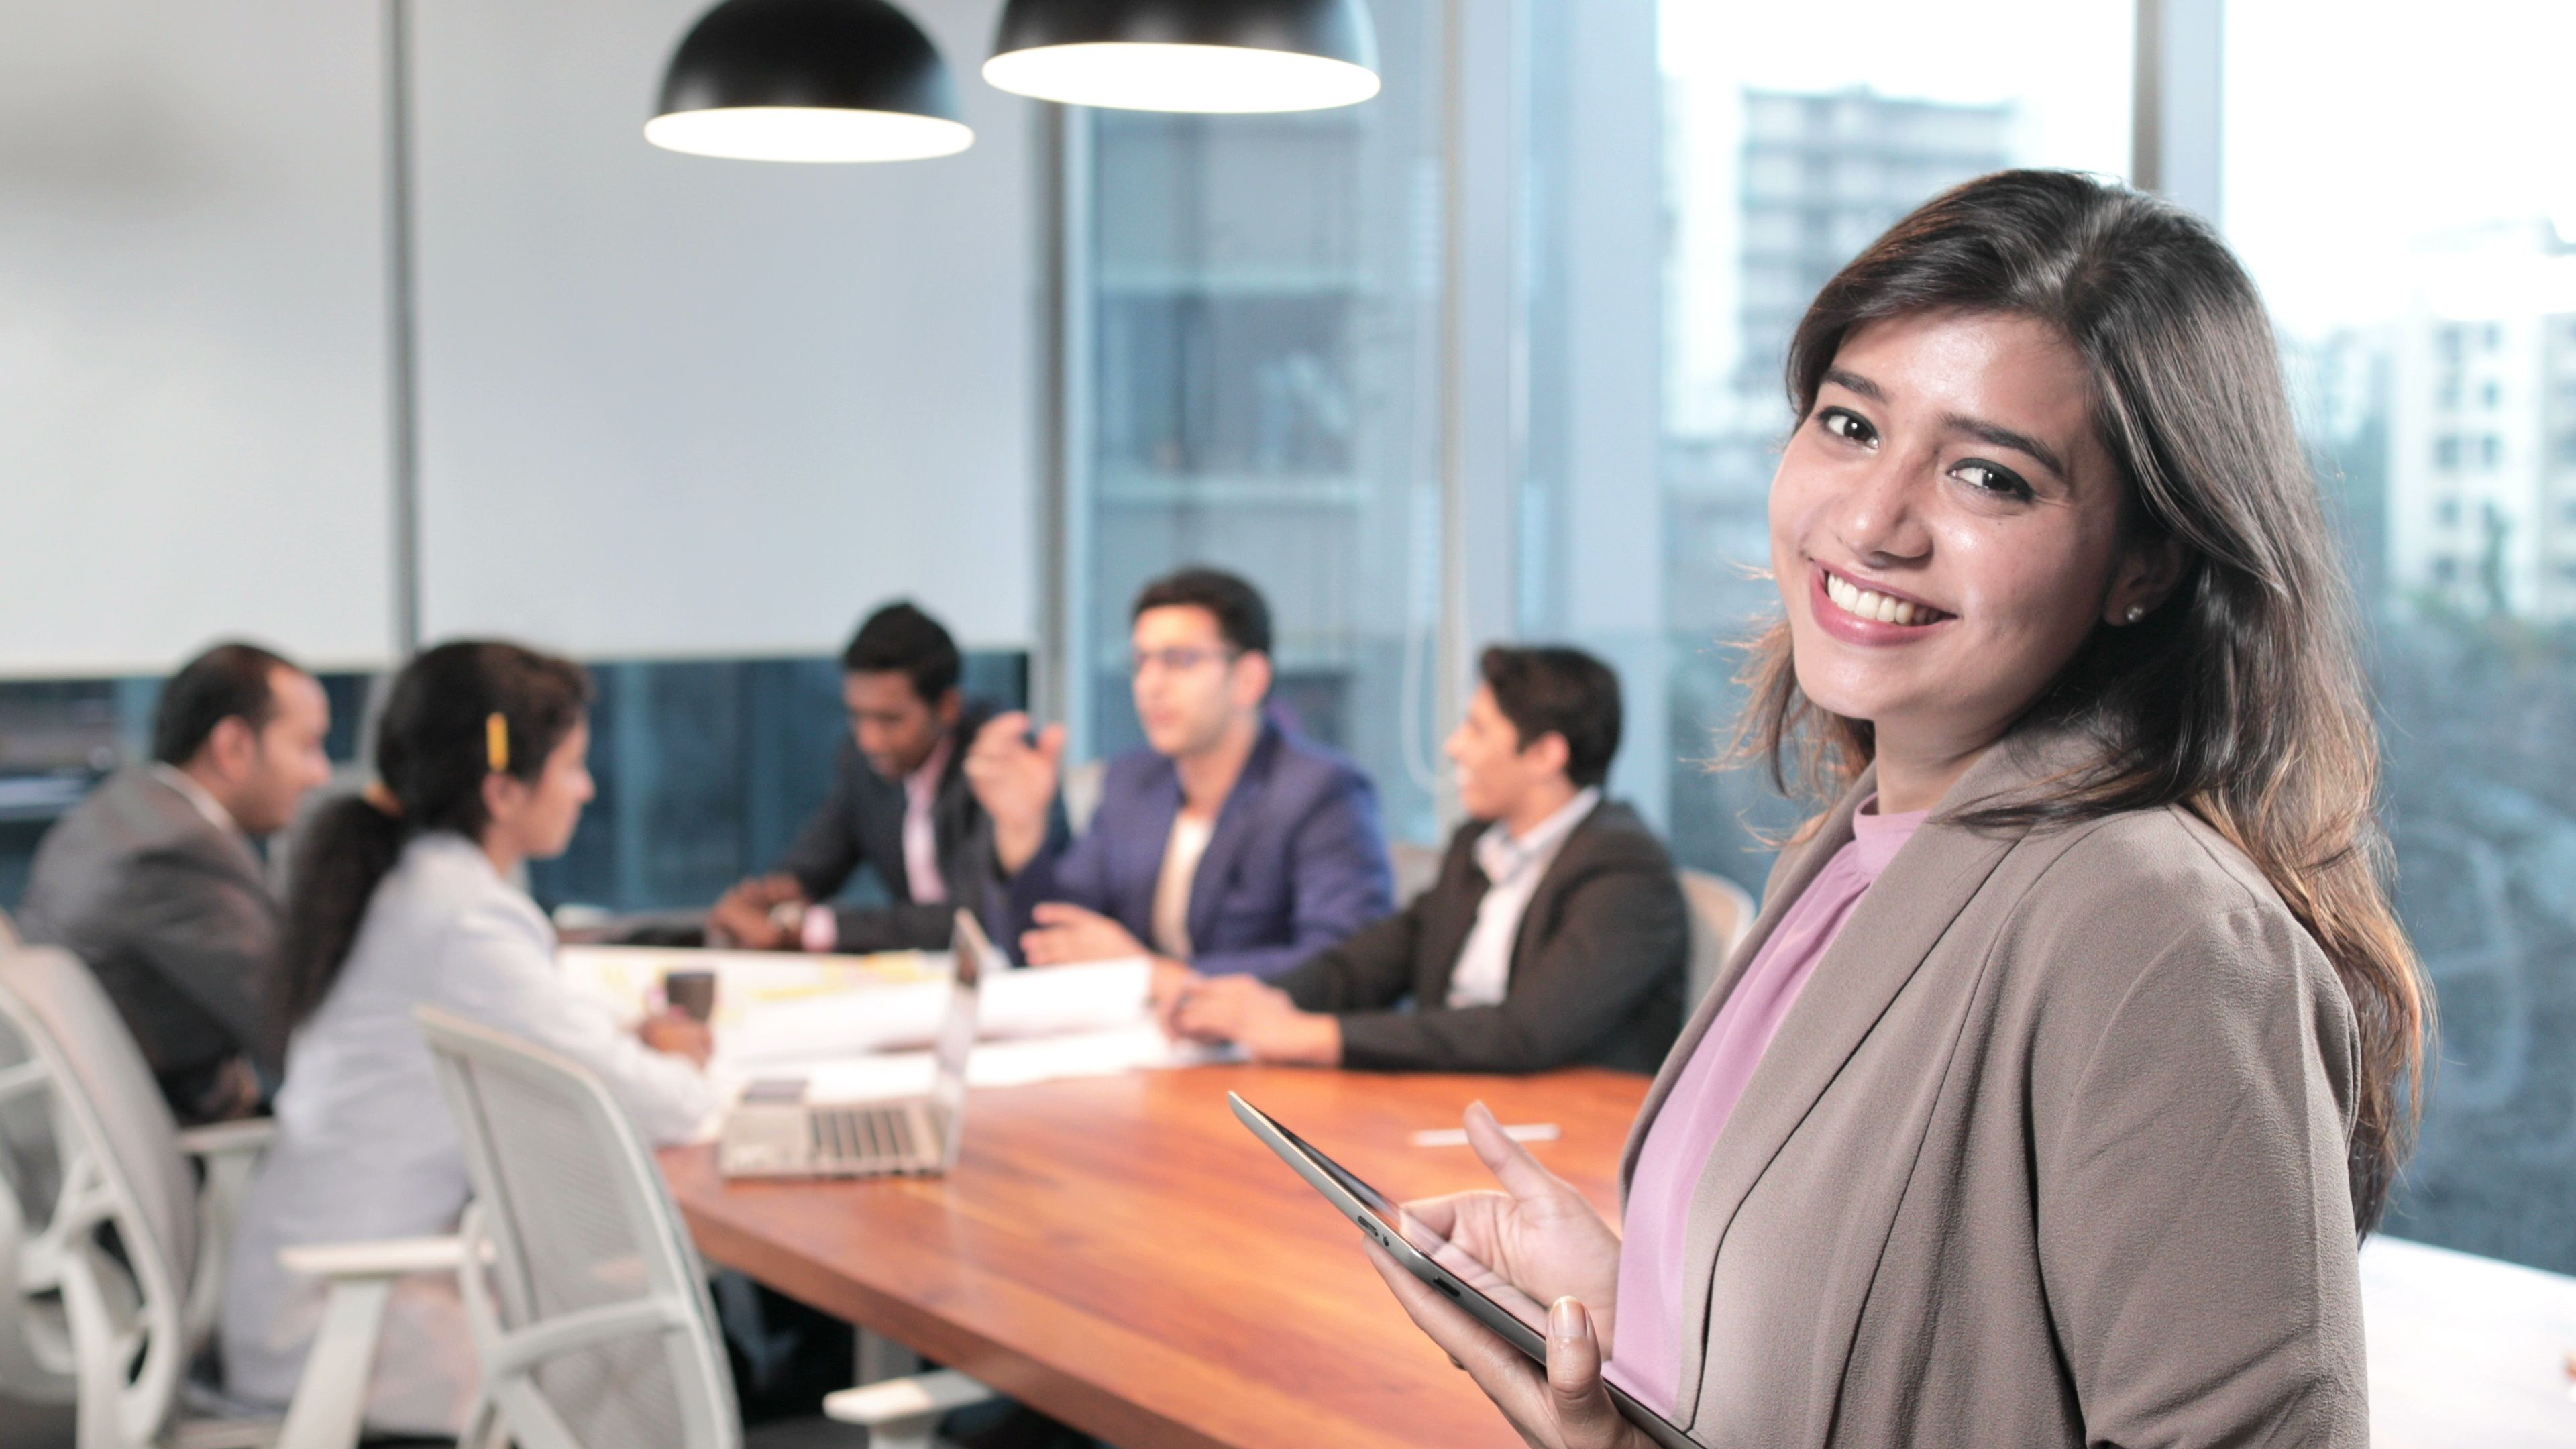 A beautiful office employee smiling at modern corporate